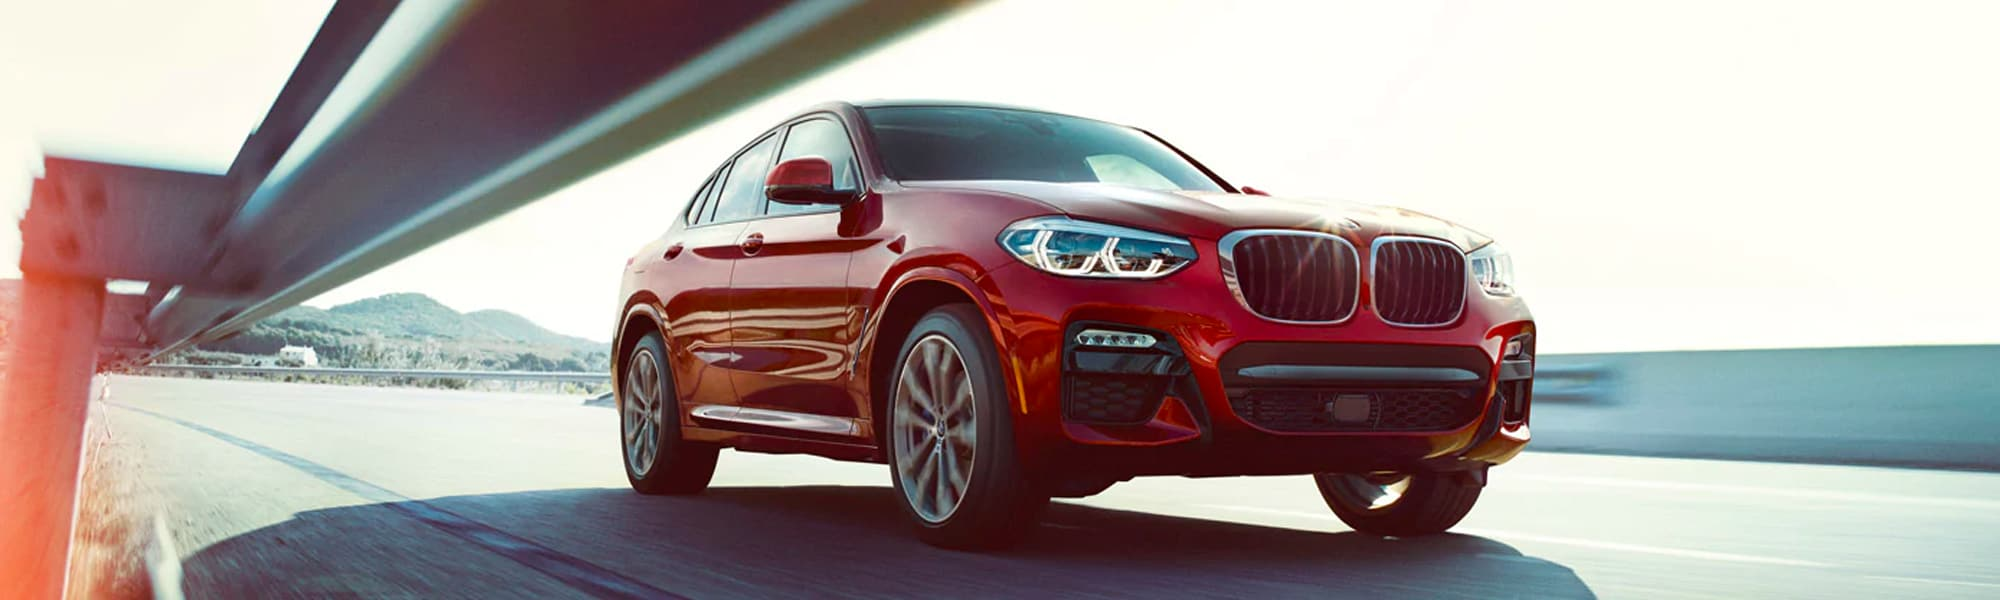 BMW X4 Lease >> Bmw X4 Lease Offer Bmw Of Reading